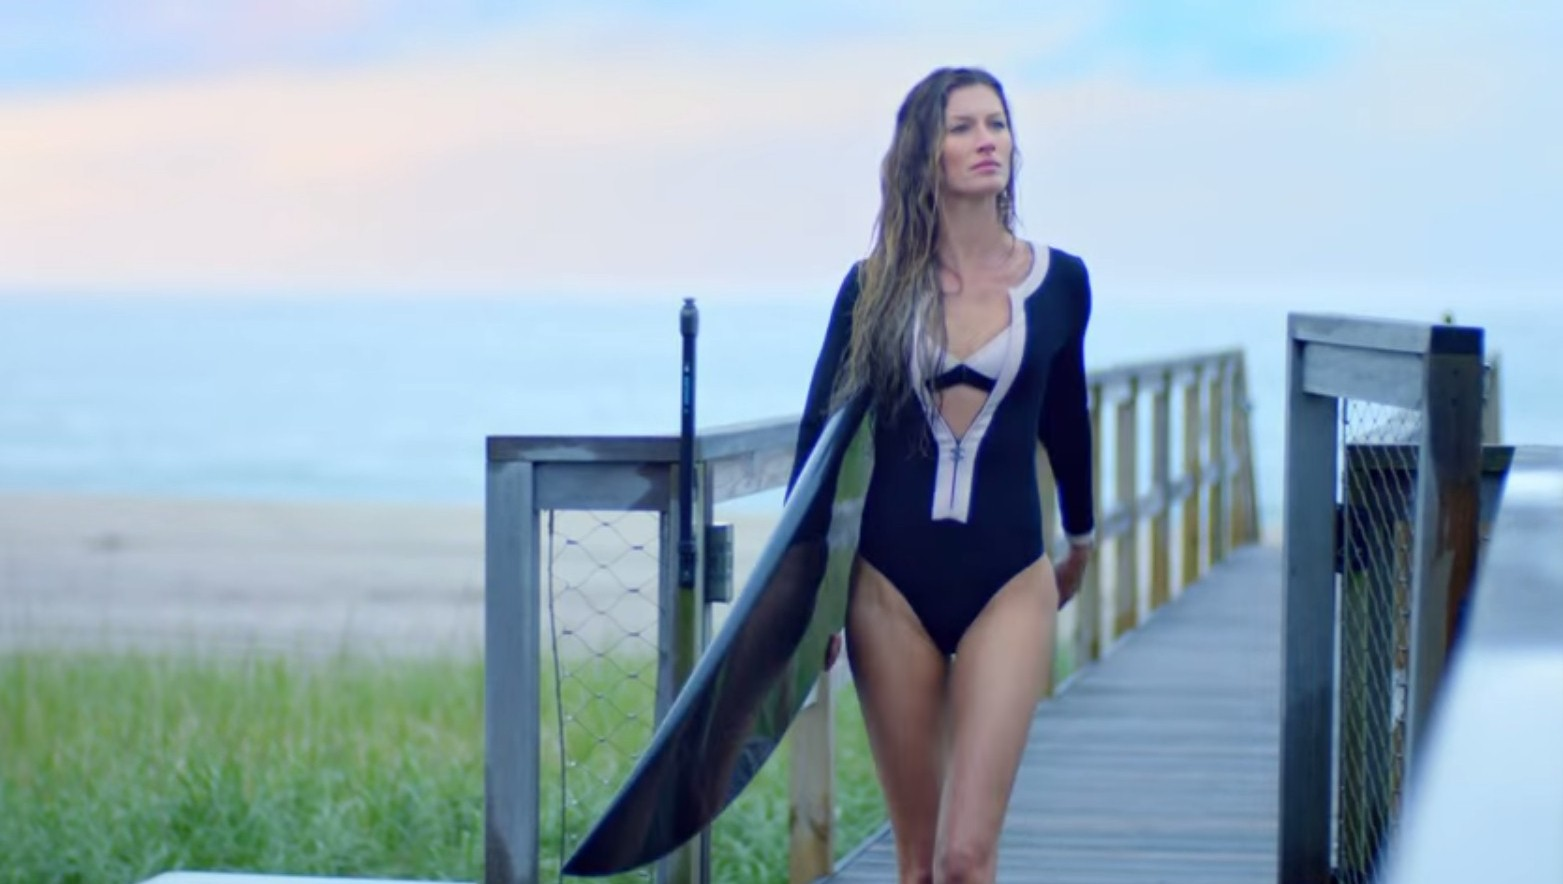 Chanel's new Baz Luhrmann blockbuster starring Gisele Bundchen as a sexy surfer is giving us chills